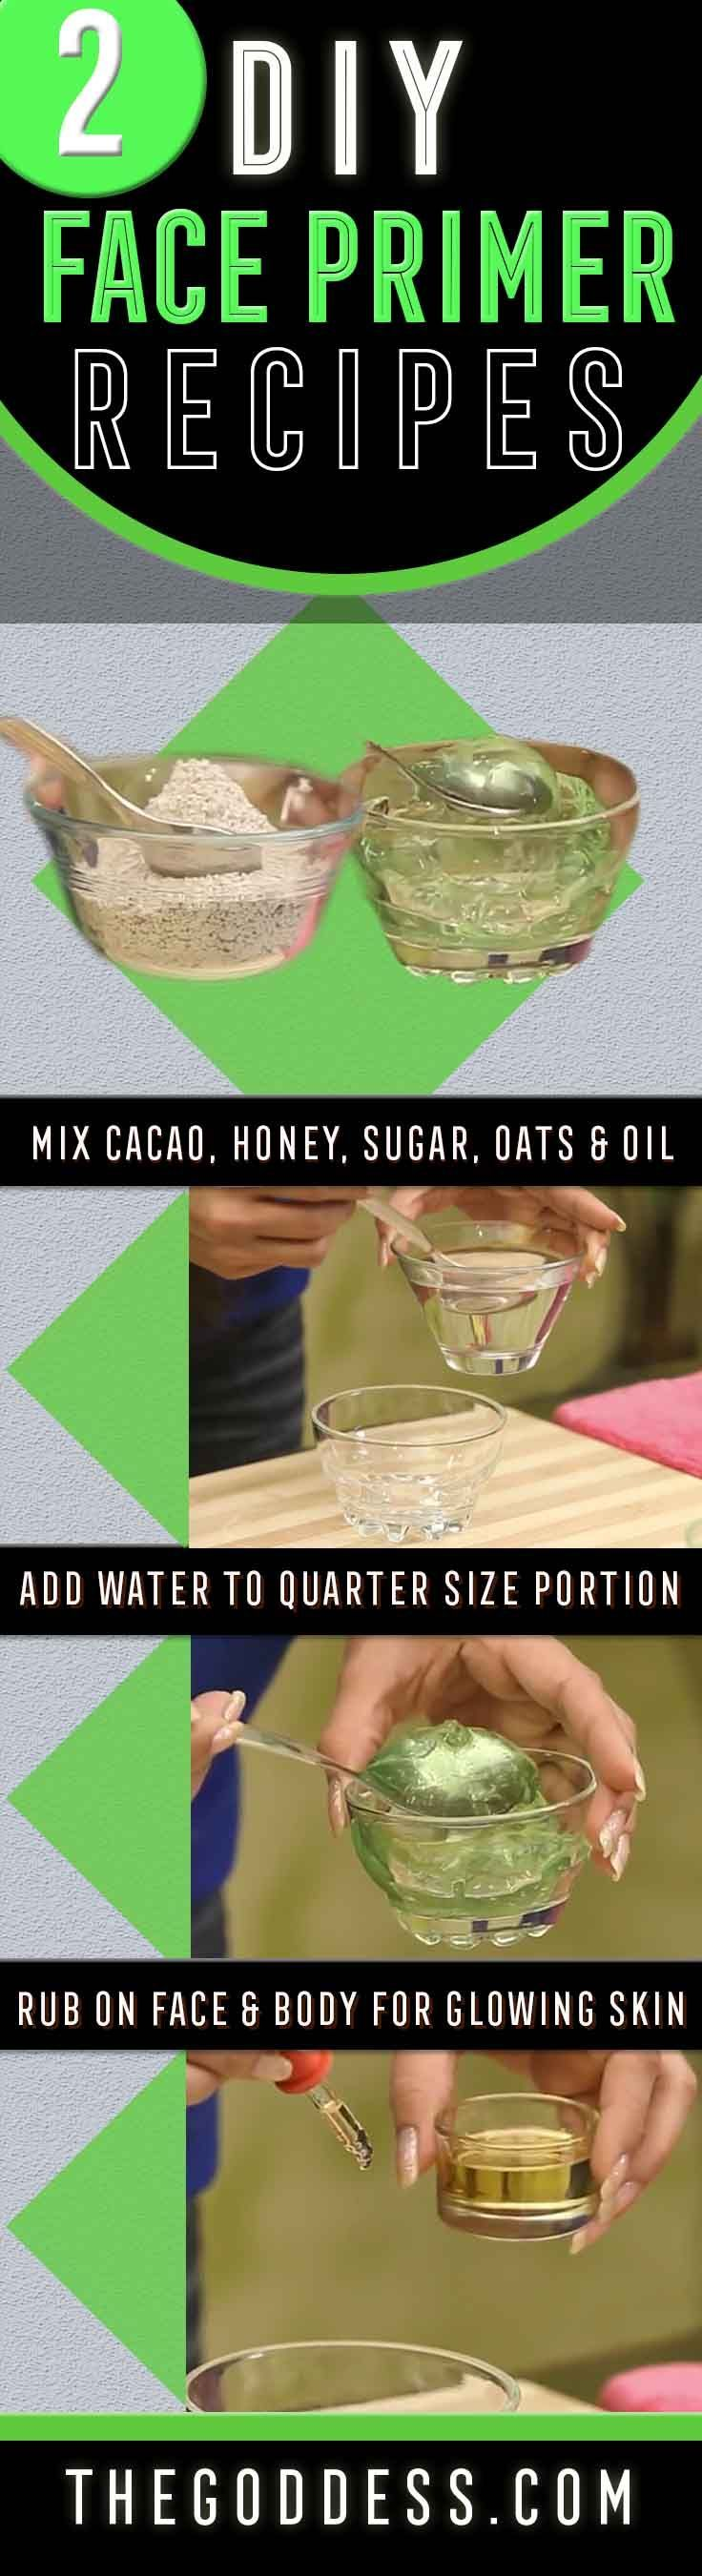 2 Awesome DIY Face Primer Recipes To Try Today - Homemade DIY Face primer Recipes - Easy and Great for Oily Skin - https://www.thegoddess.com/diy-face-primer-recipes/